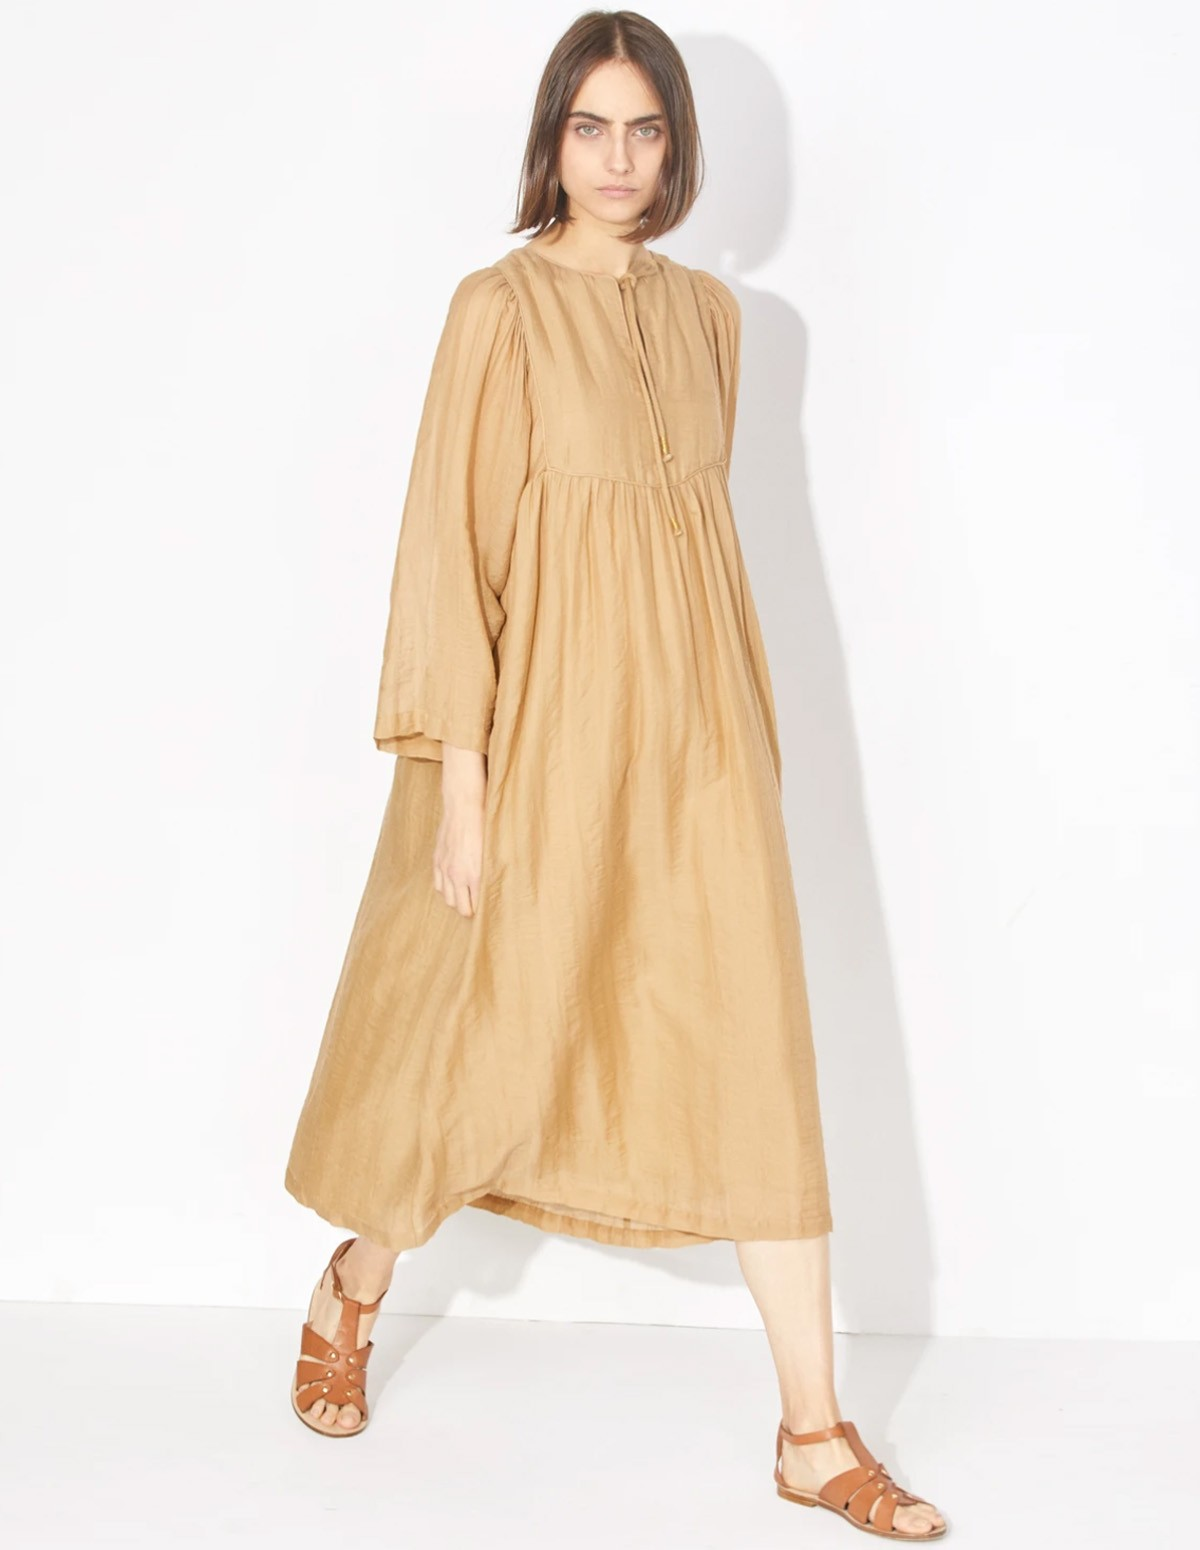 Masscob Vernette Dress - HAZEL